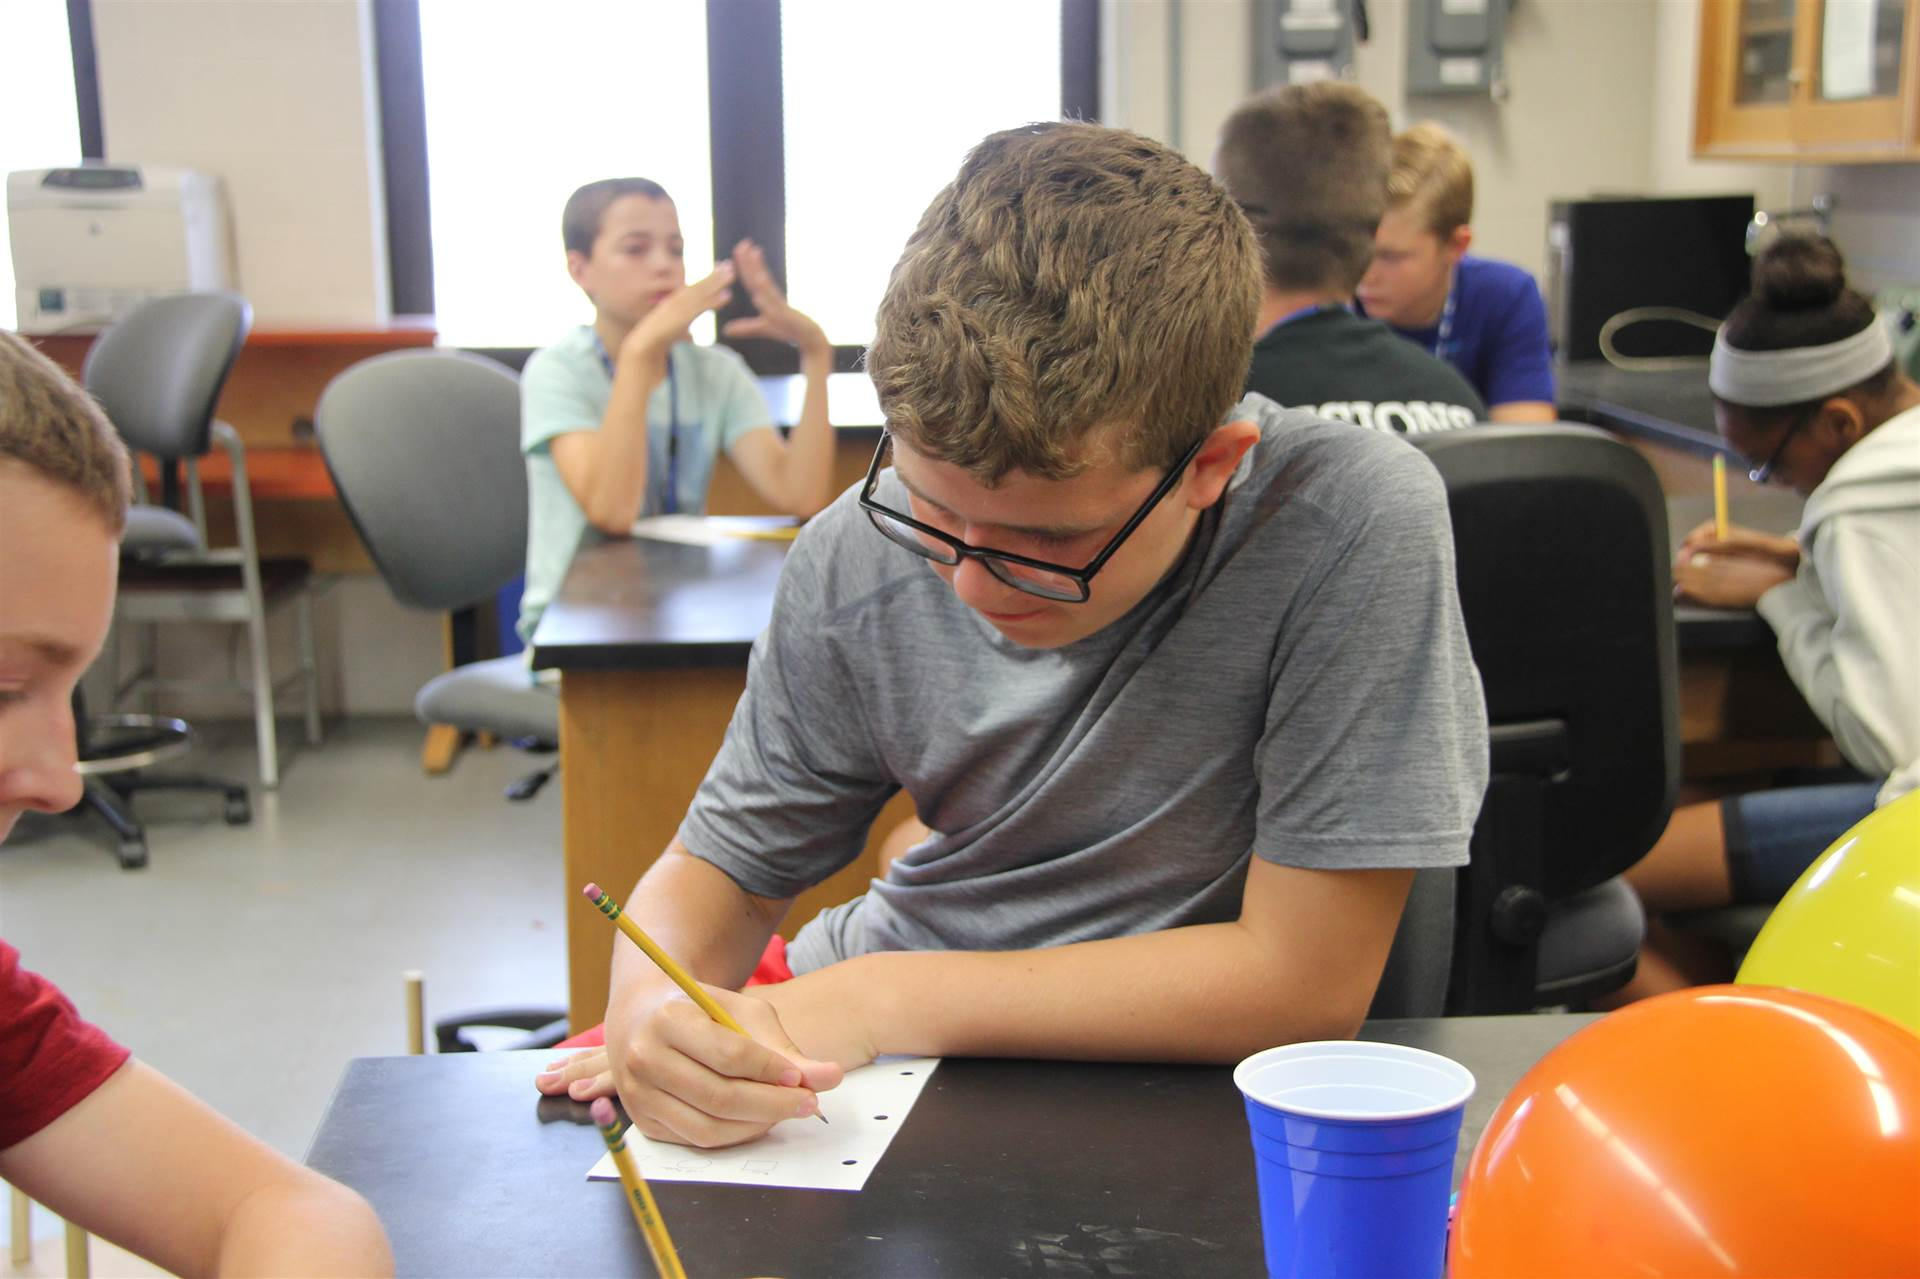 c v student writes out equation at boces summer steam academy